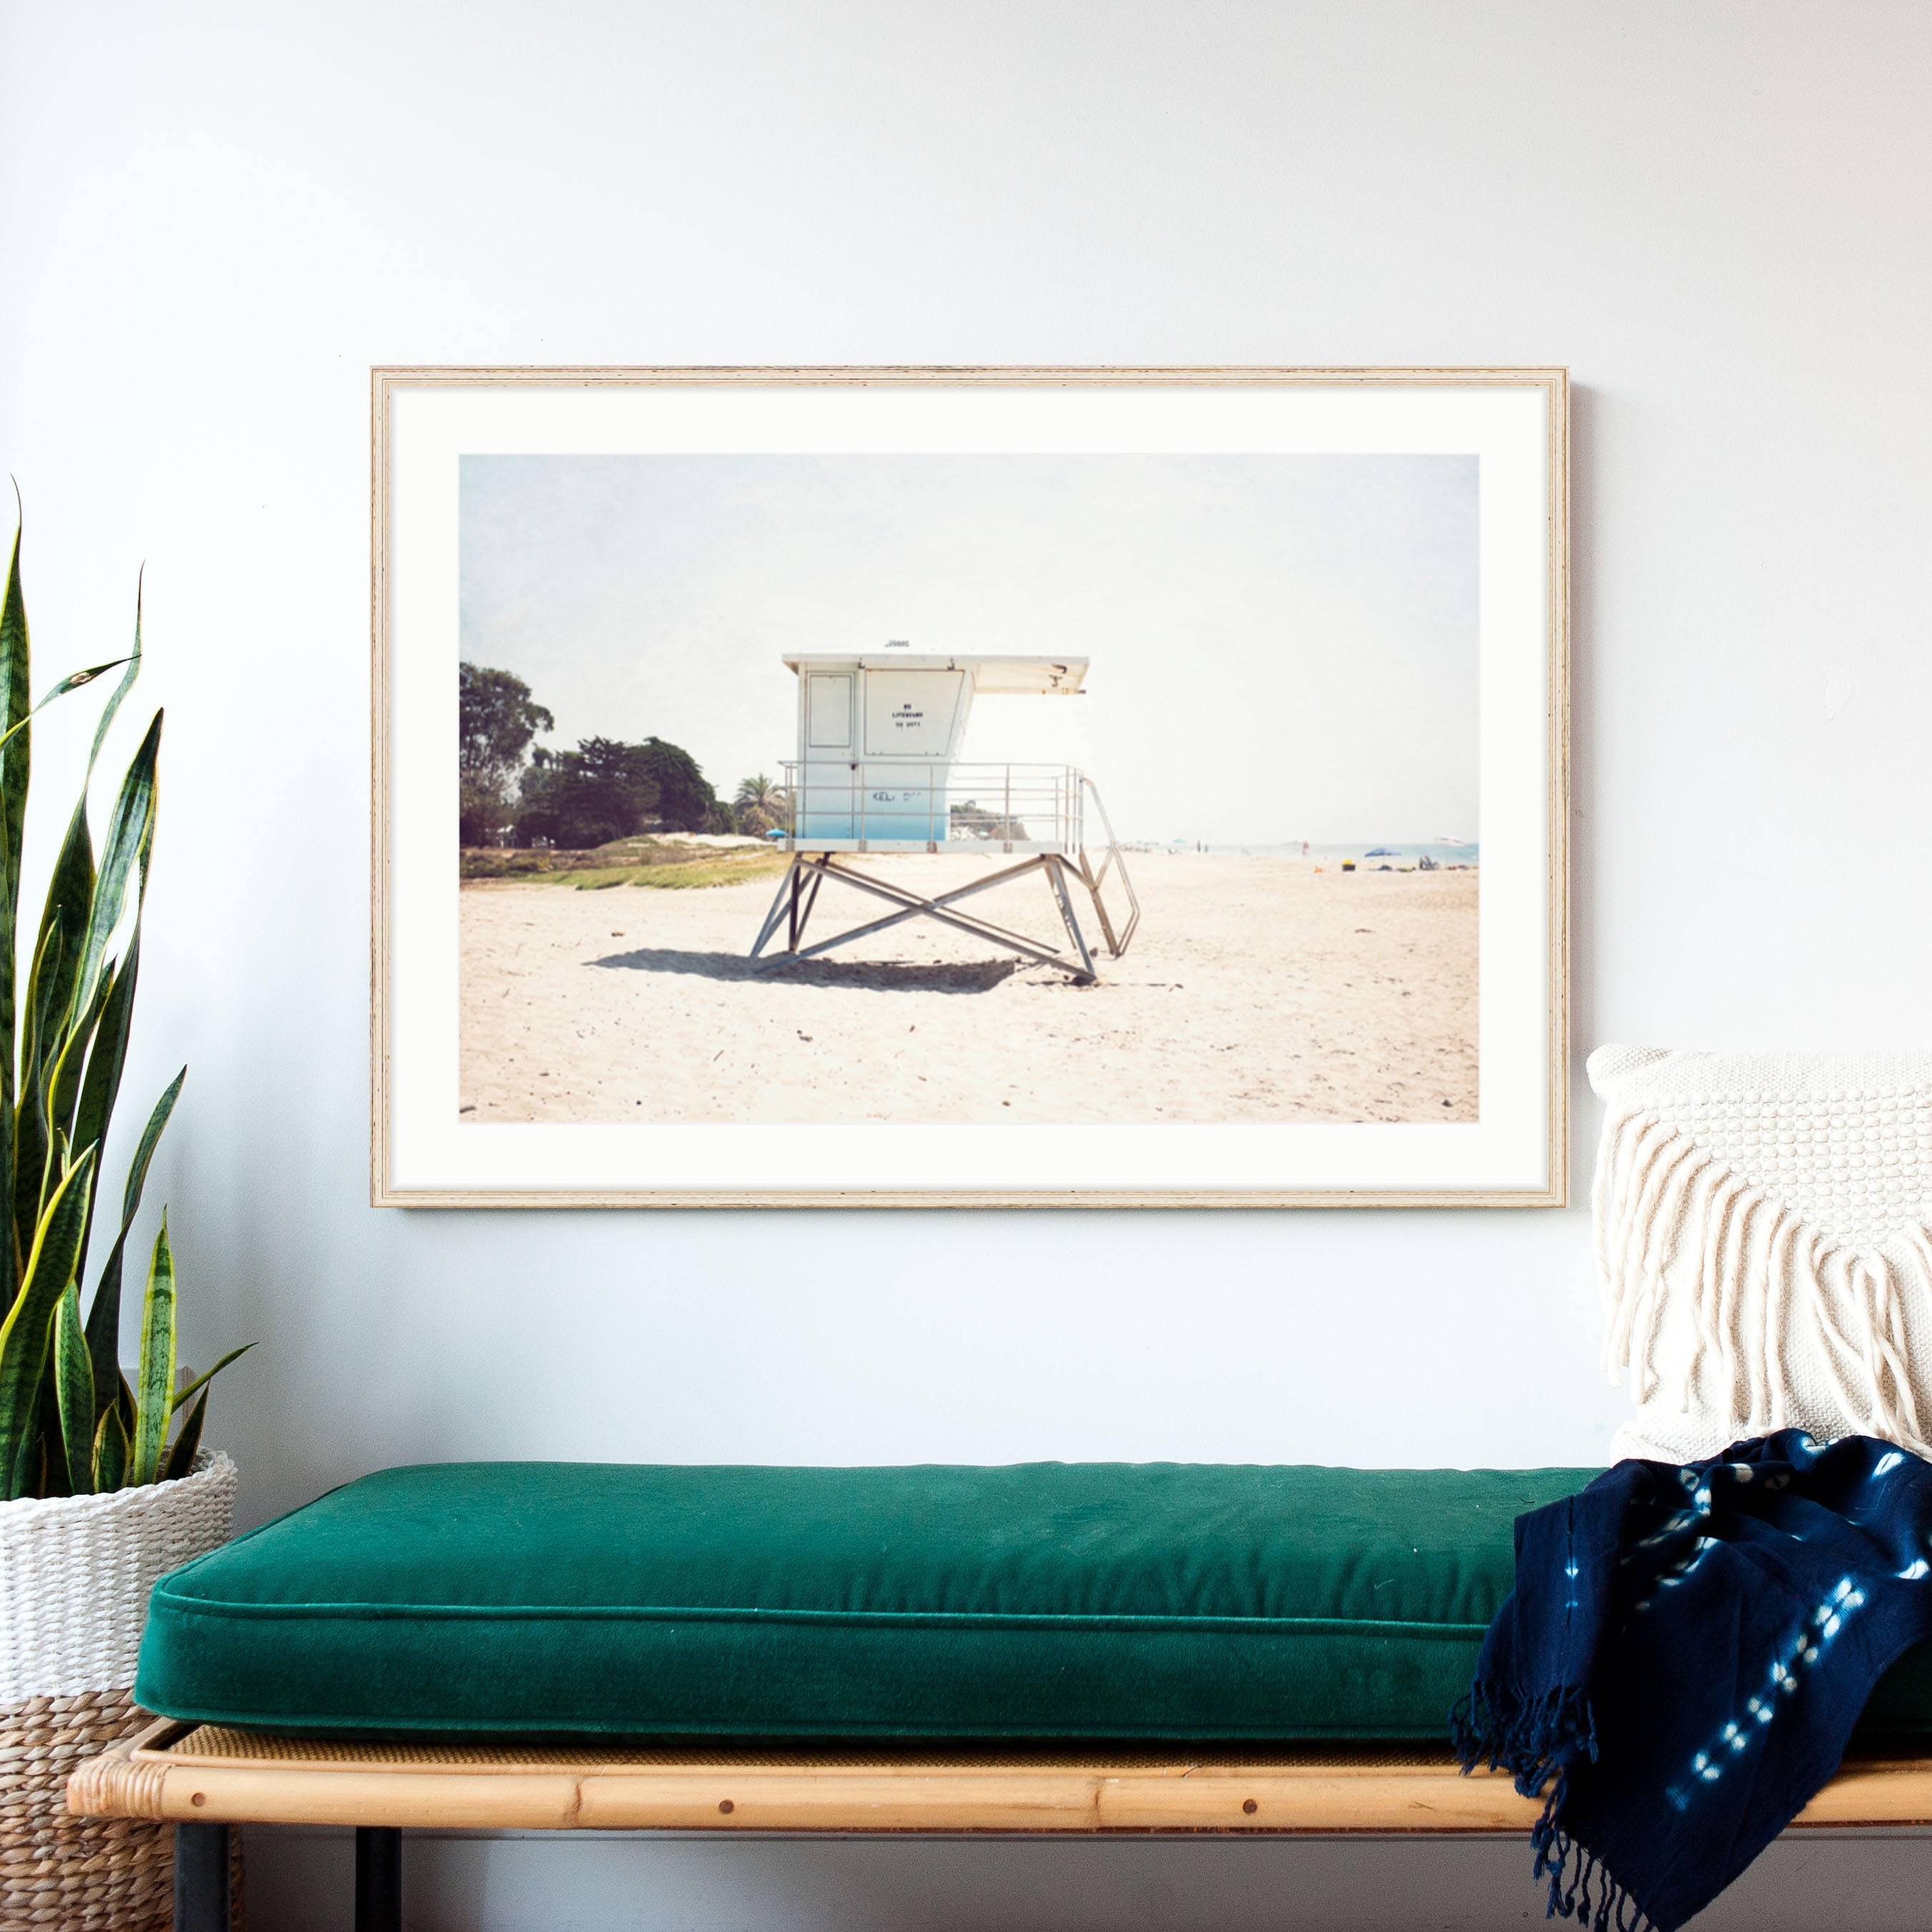 Ferris Wheel Wall Art Pastel Bright Colorful Nursery Room Within Most Current Framed Beach Art Prints (View 9 of 15)